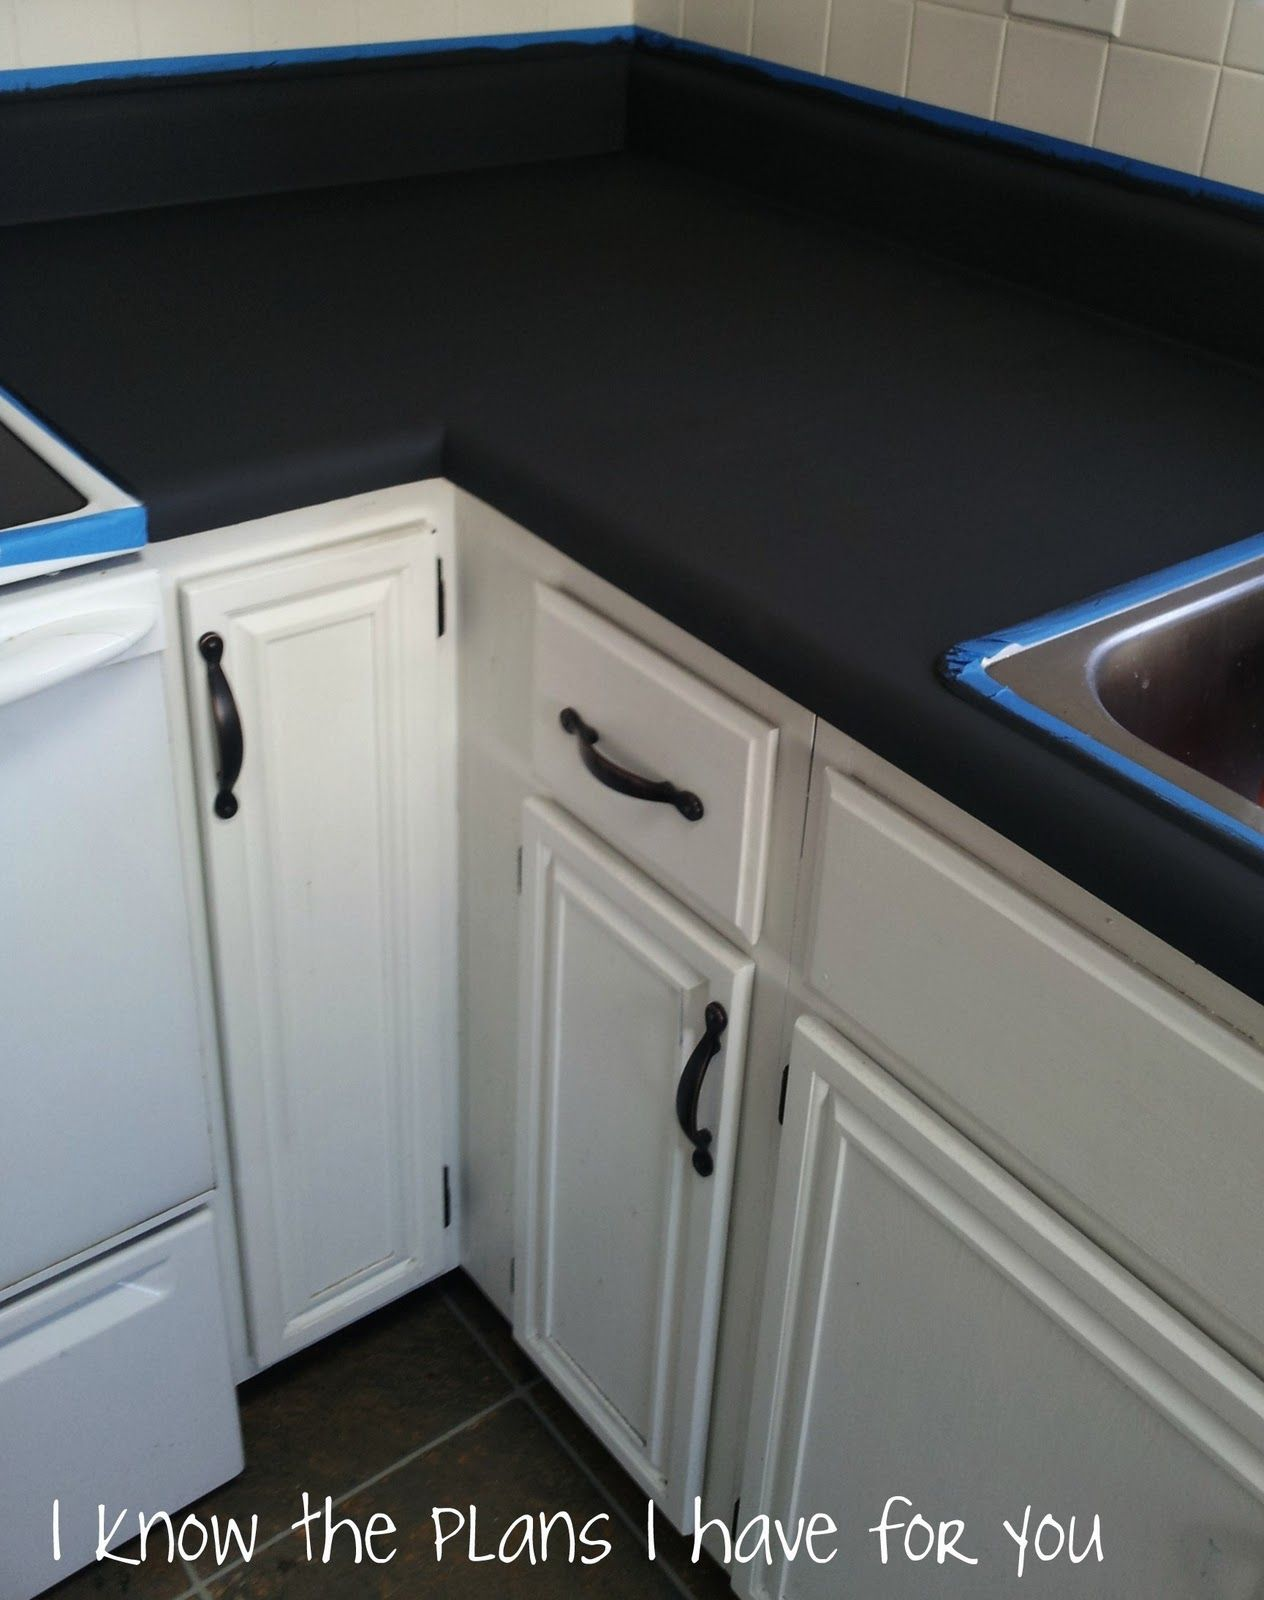 Diy How To Paint Kitchen Countertops Lots Of Tips On What To Do And What Not To Do Painting Kitchen Countertops Kitchen Remodel Countertops Diy Countertops